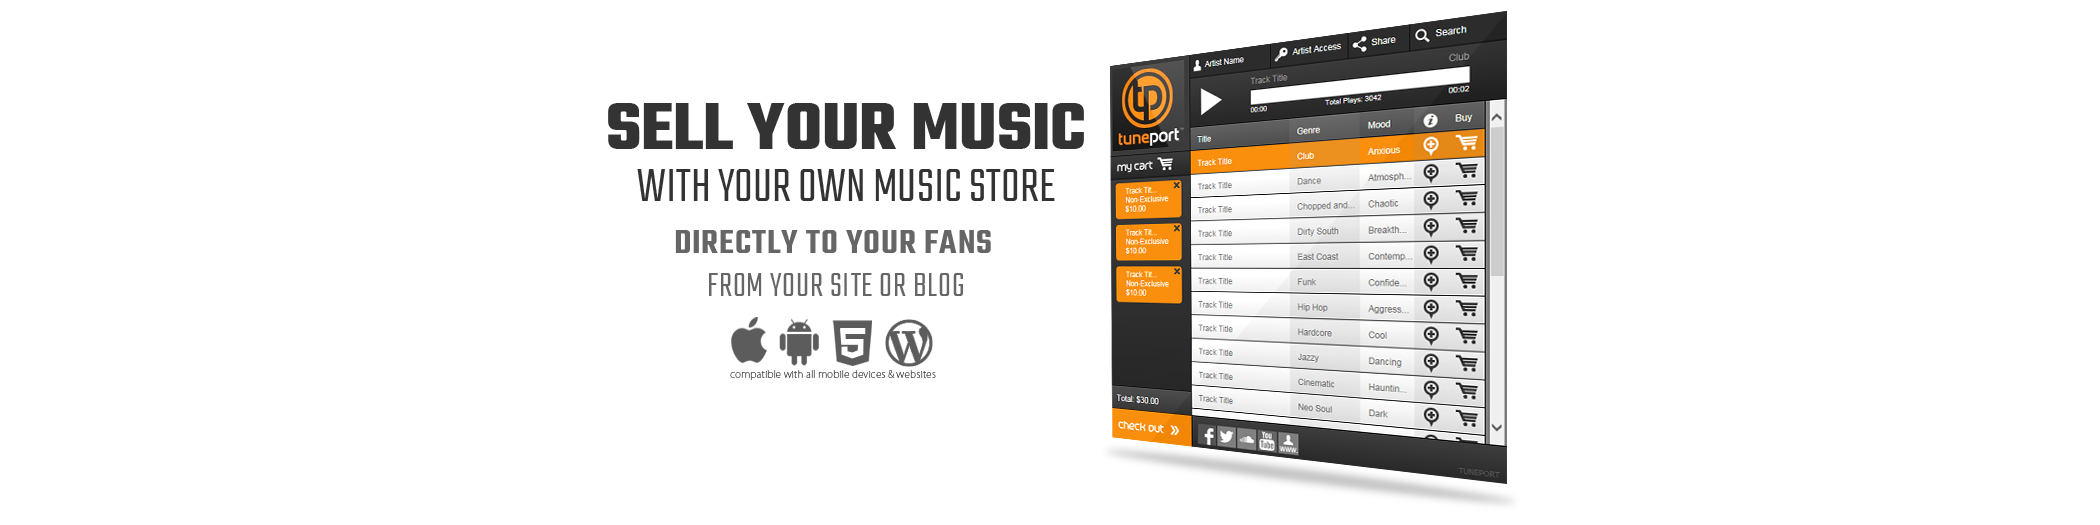 best way to sell music online